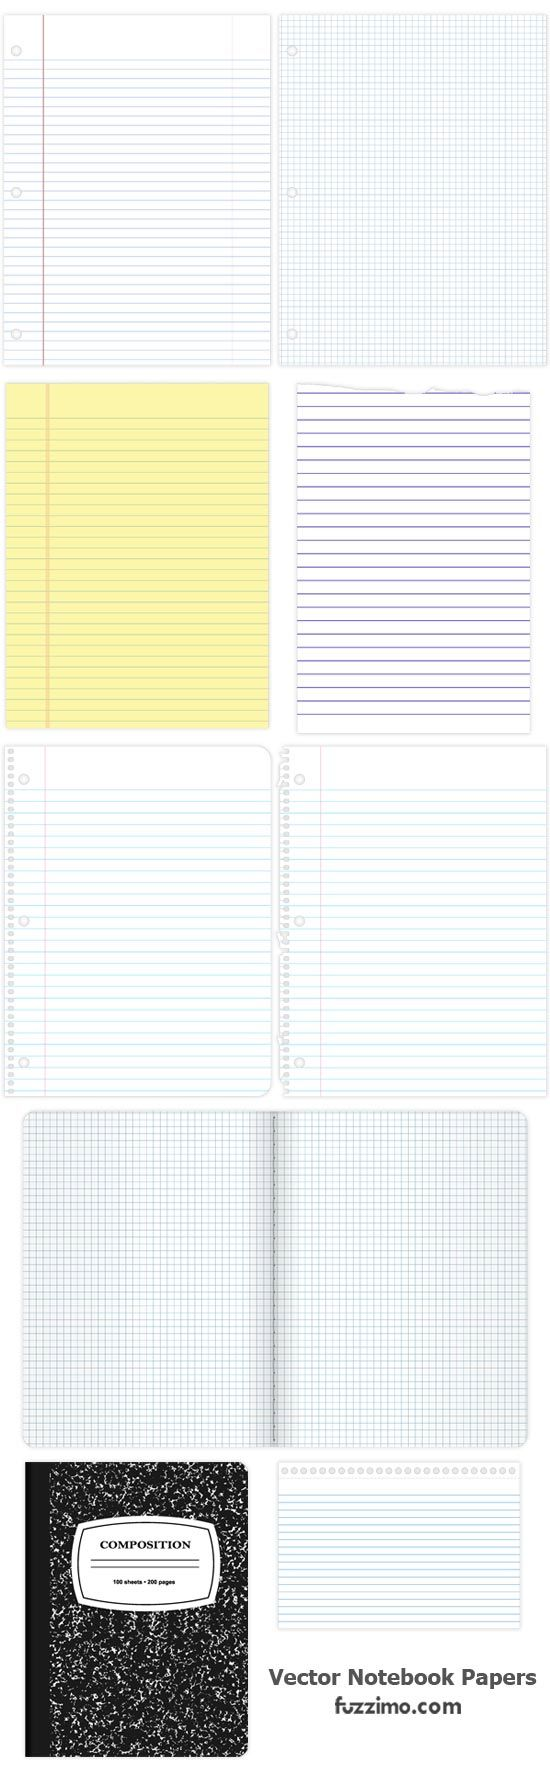 Free Vector Notebook Papers And Cover  Print Loose Leaf Paper